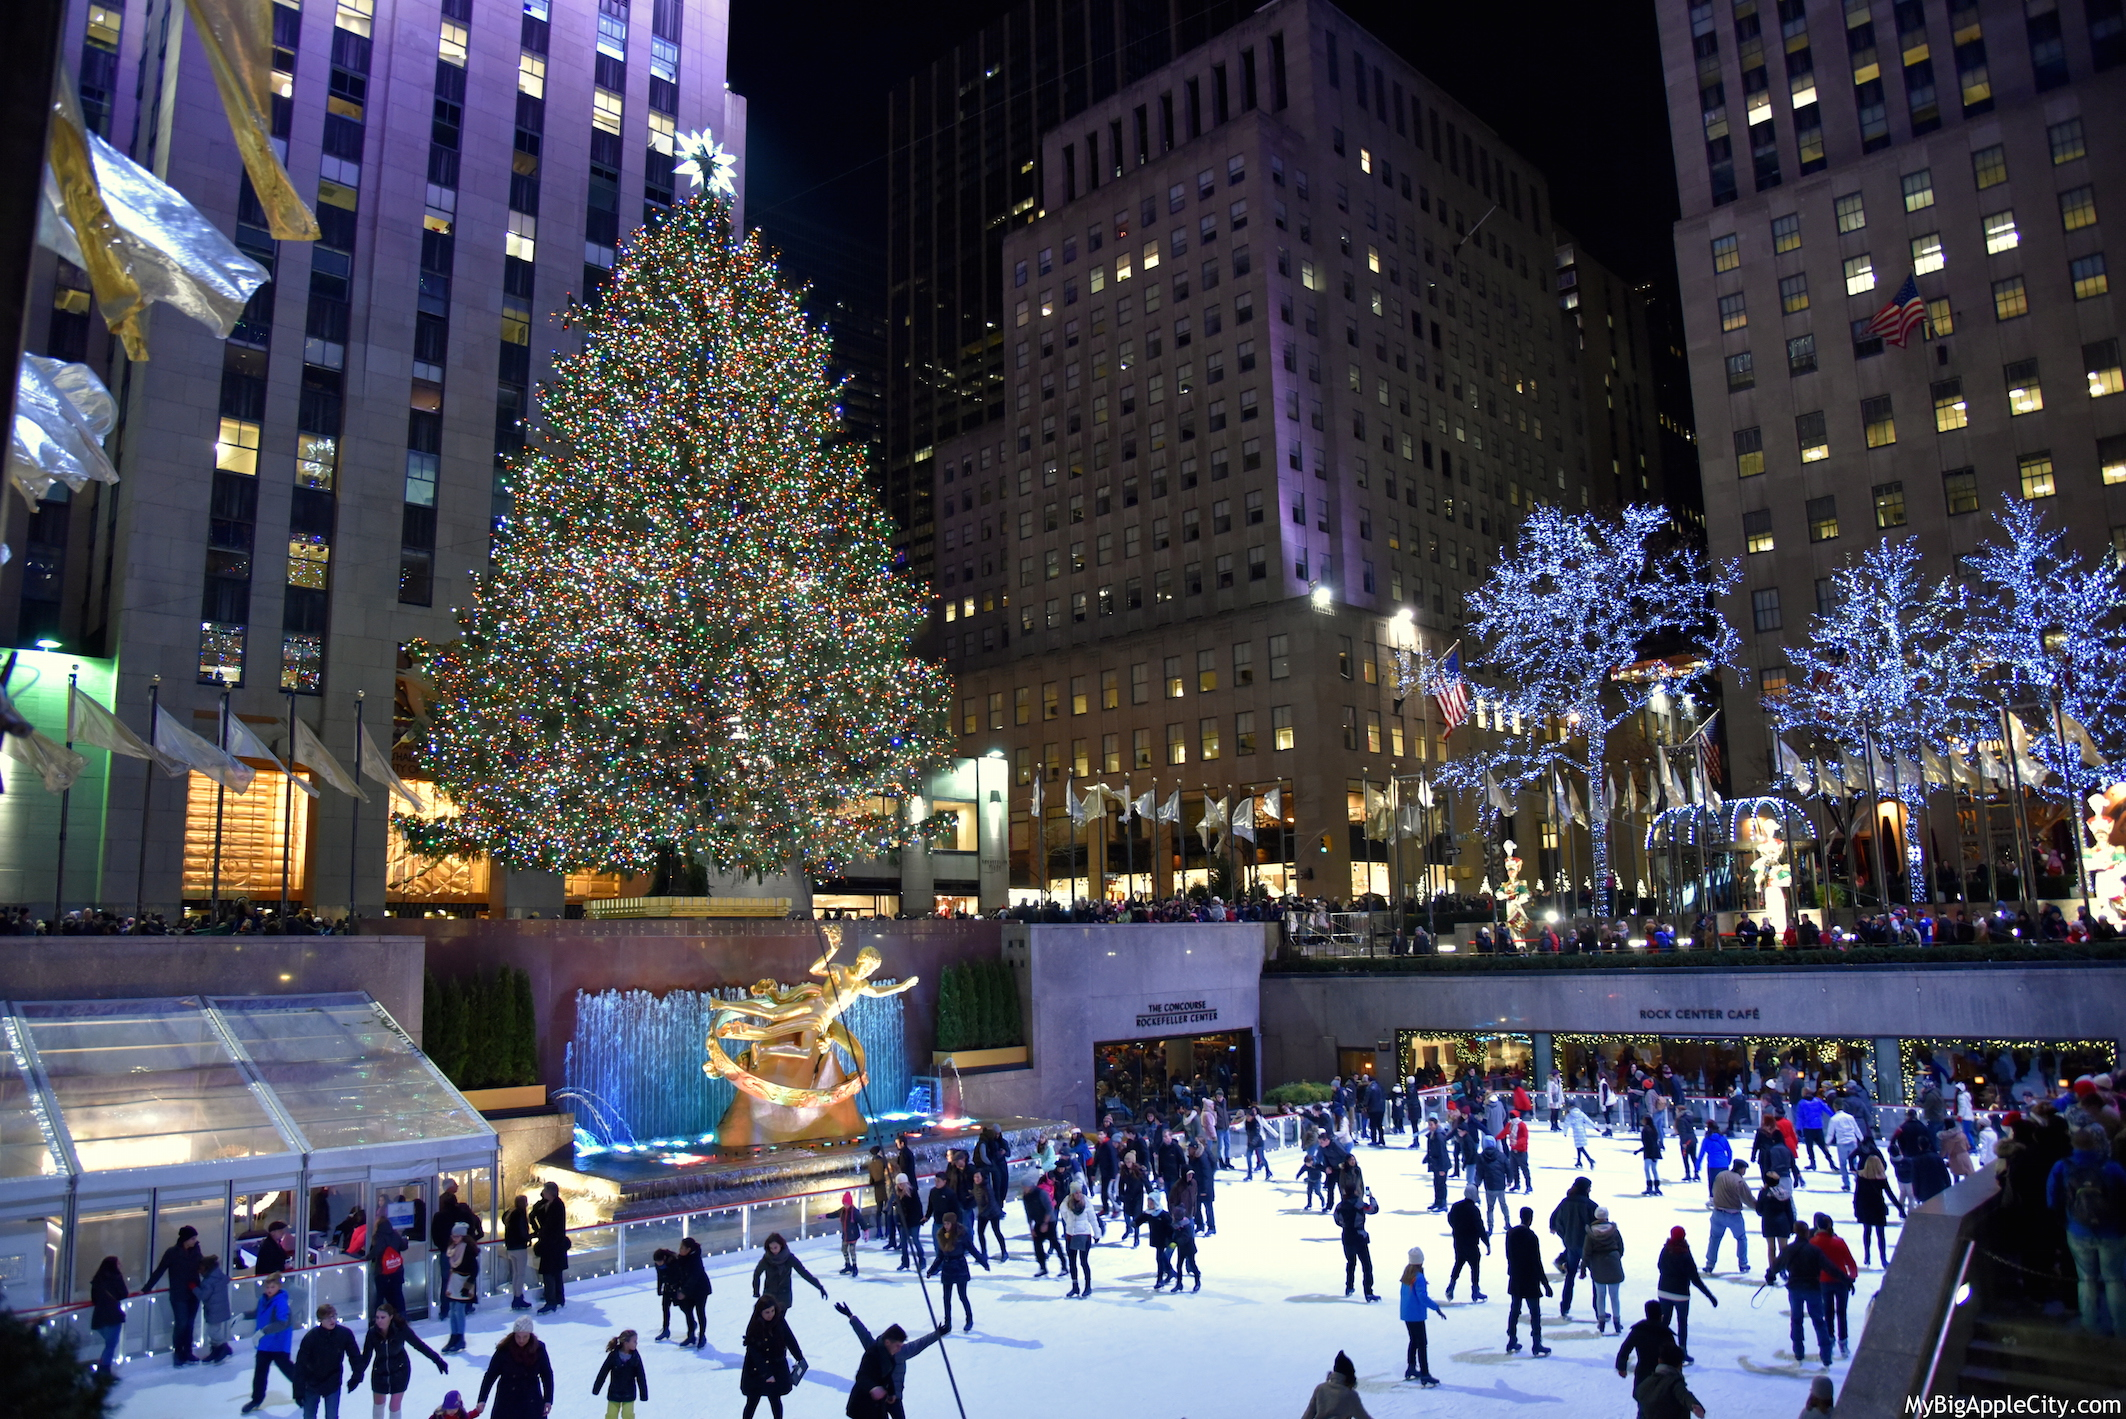 Christmas-in-New-York-manhattan-rock-center-MyBigAppleCity